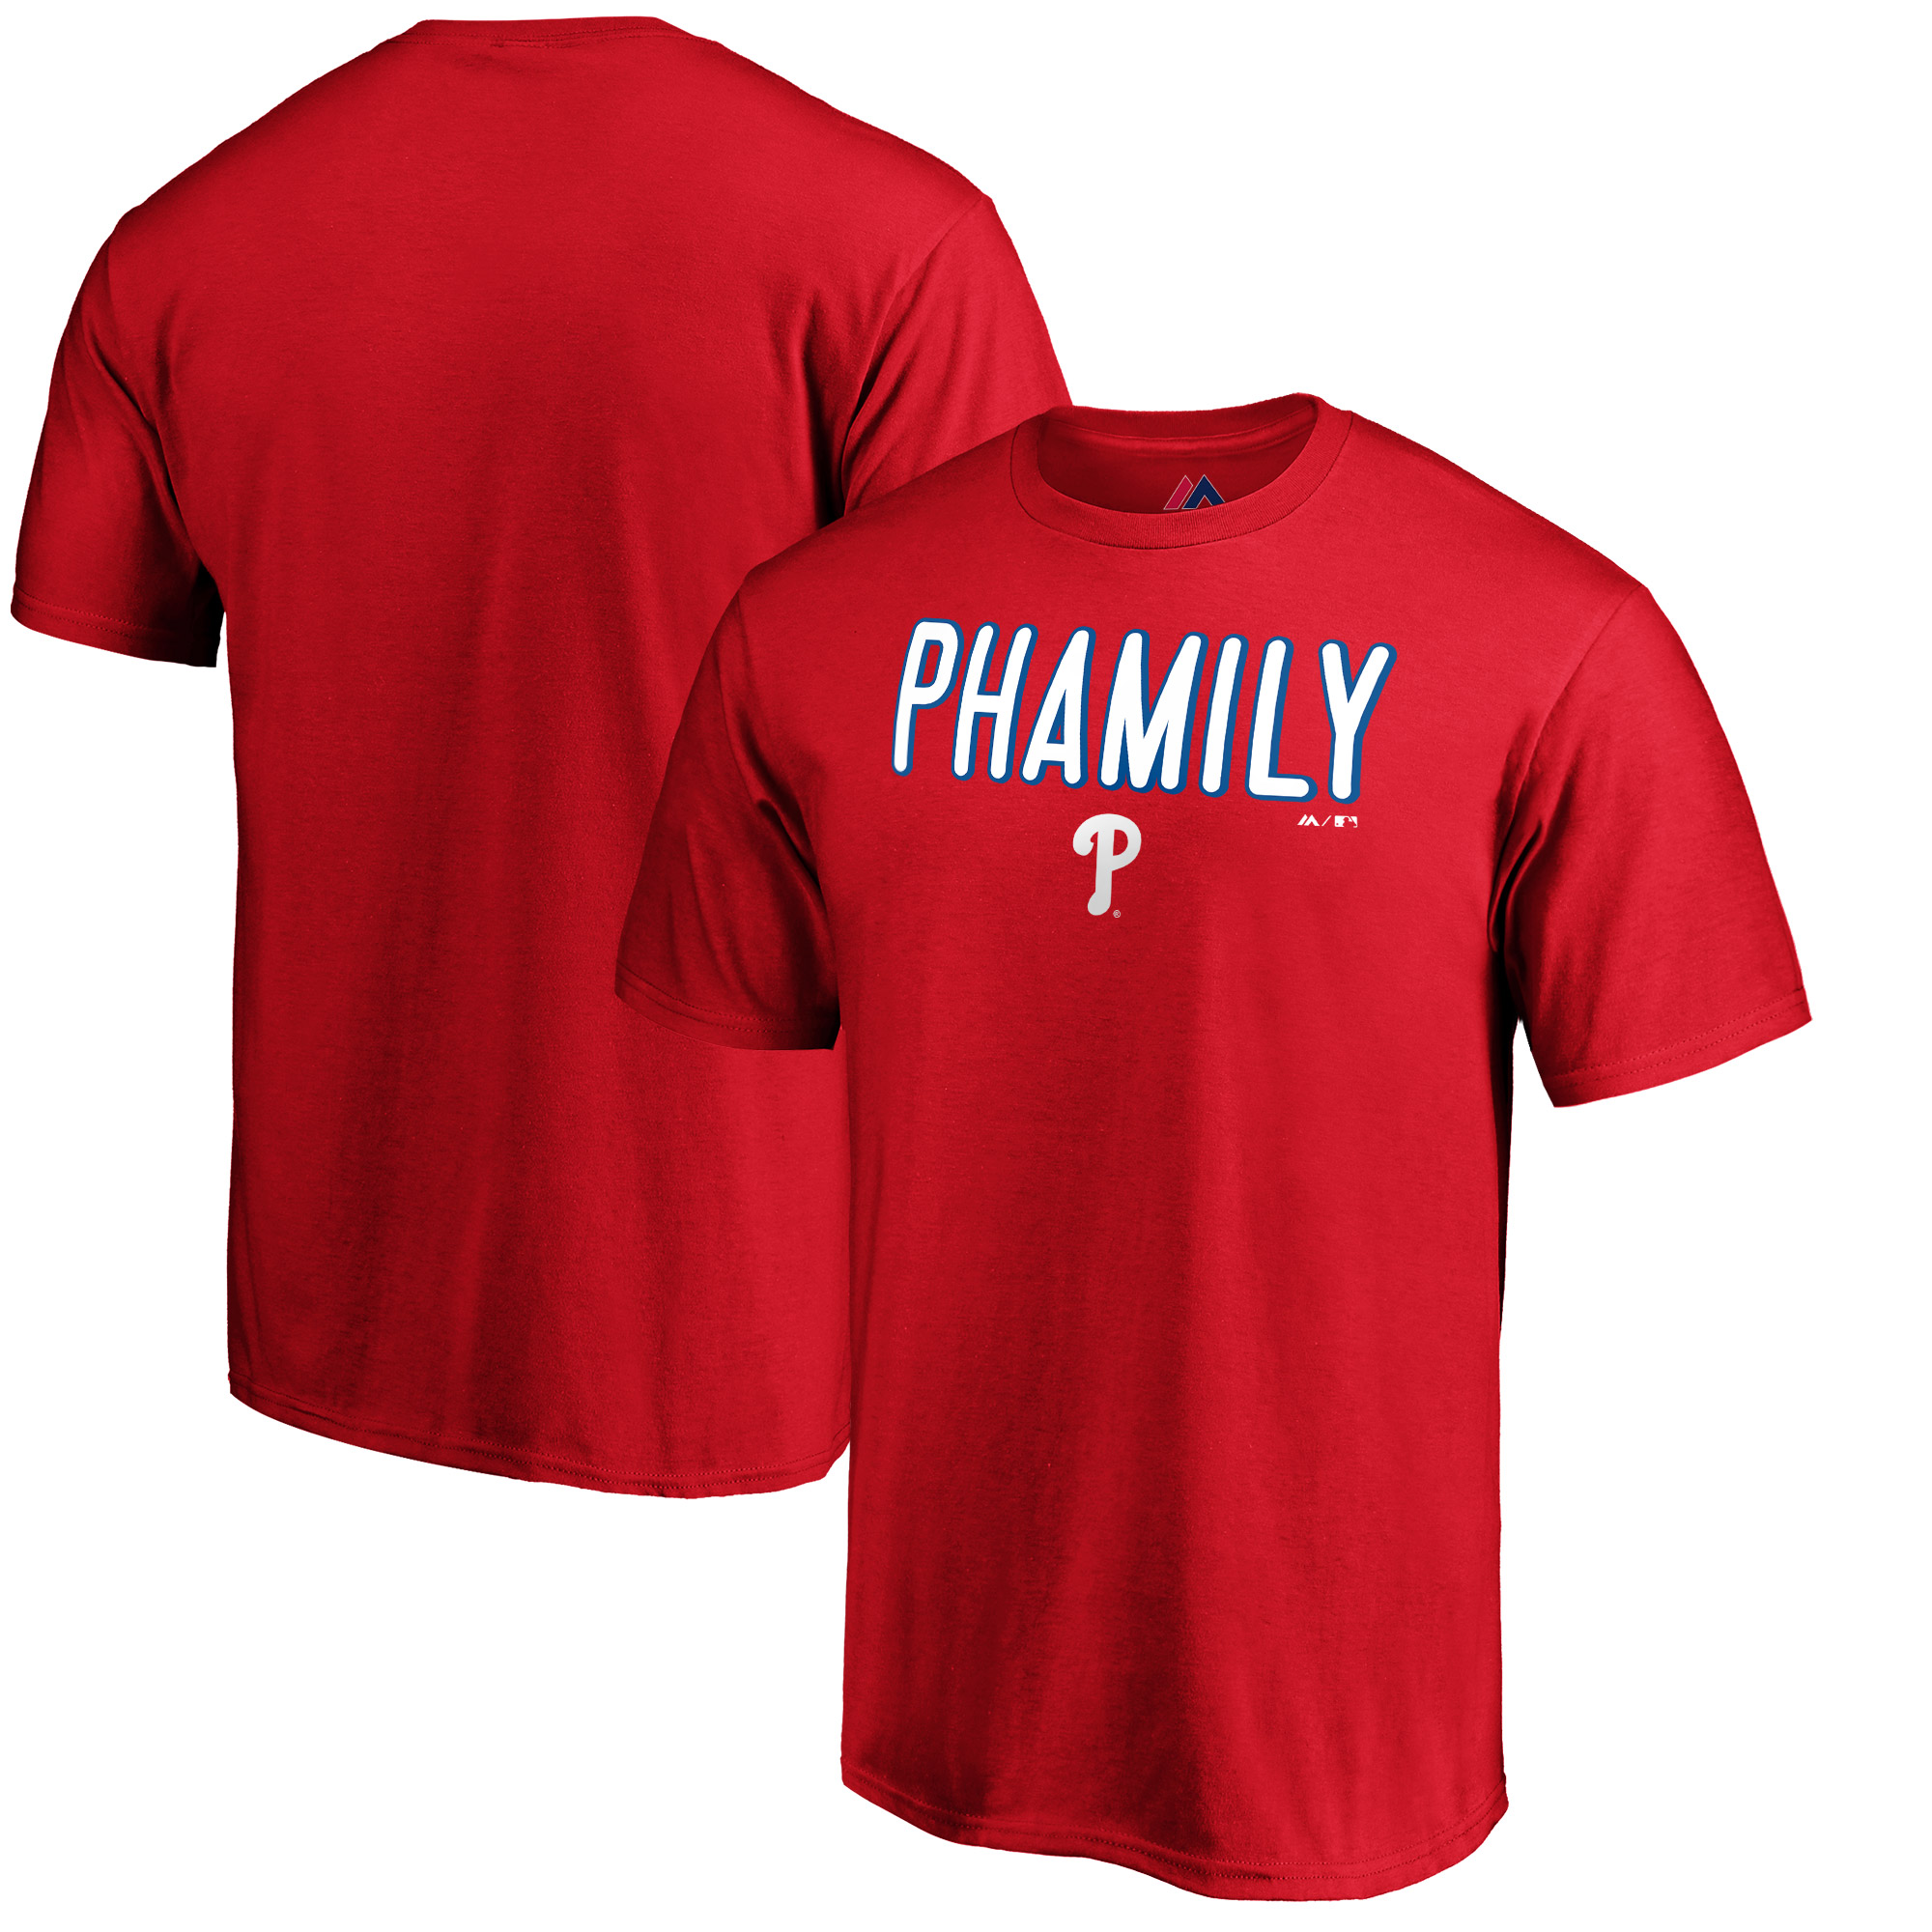 Bryce Harper Philadelphia Phillies Majestic Hometown Philly Pham T-Shirt - Red